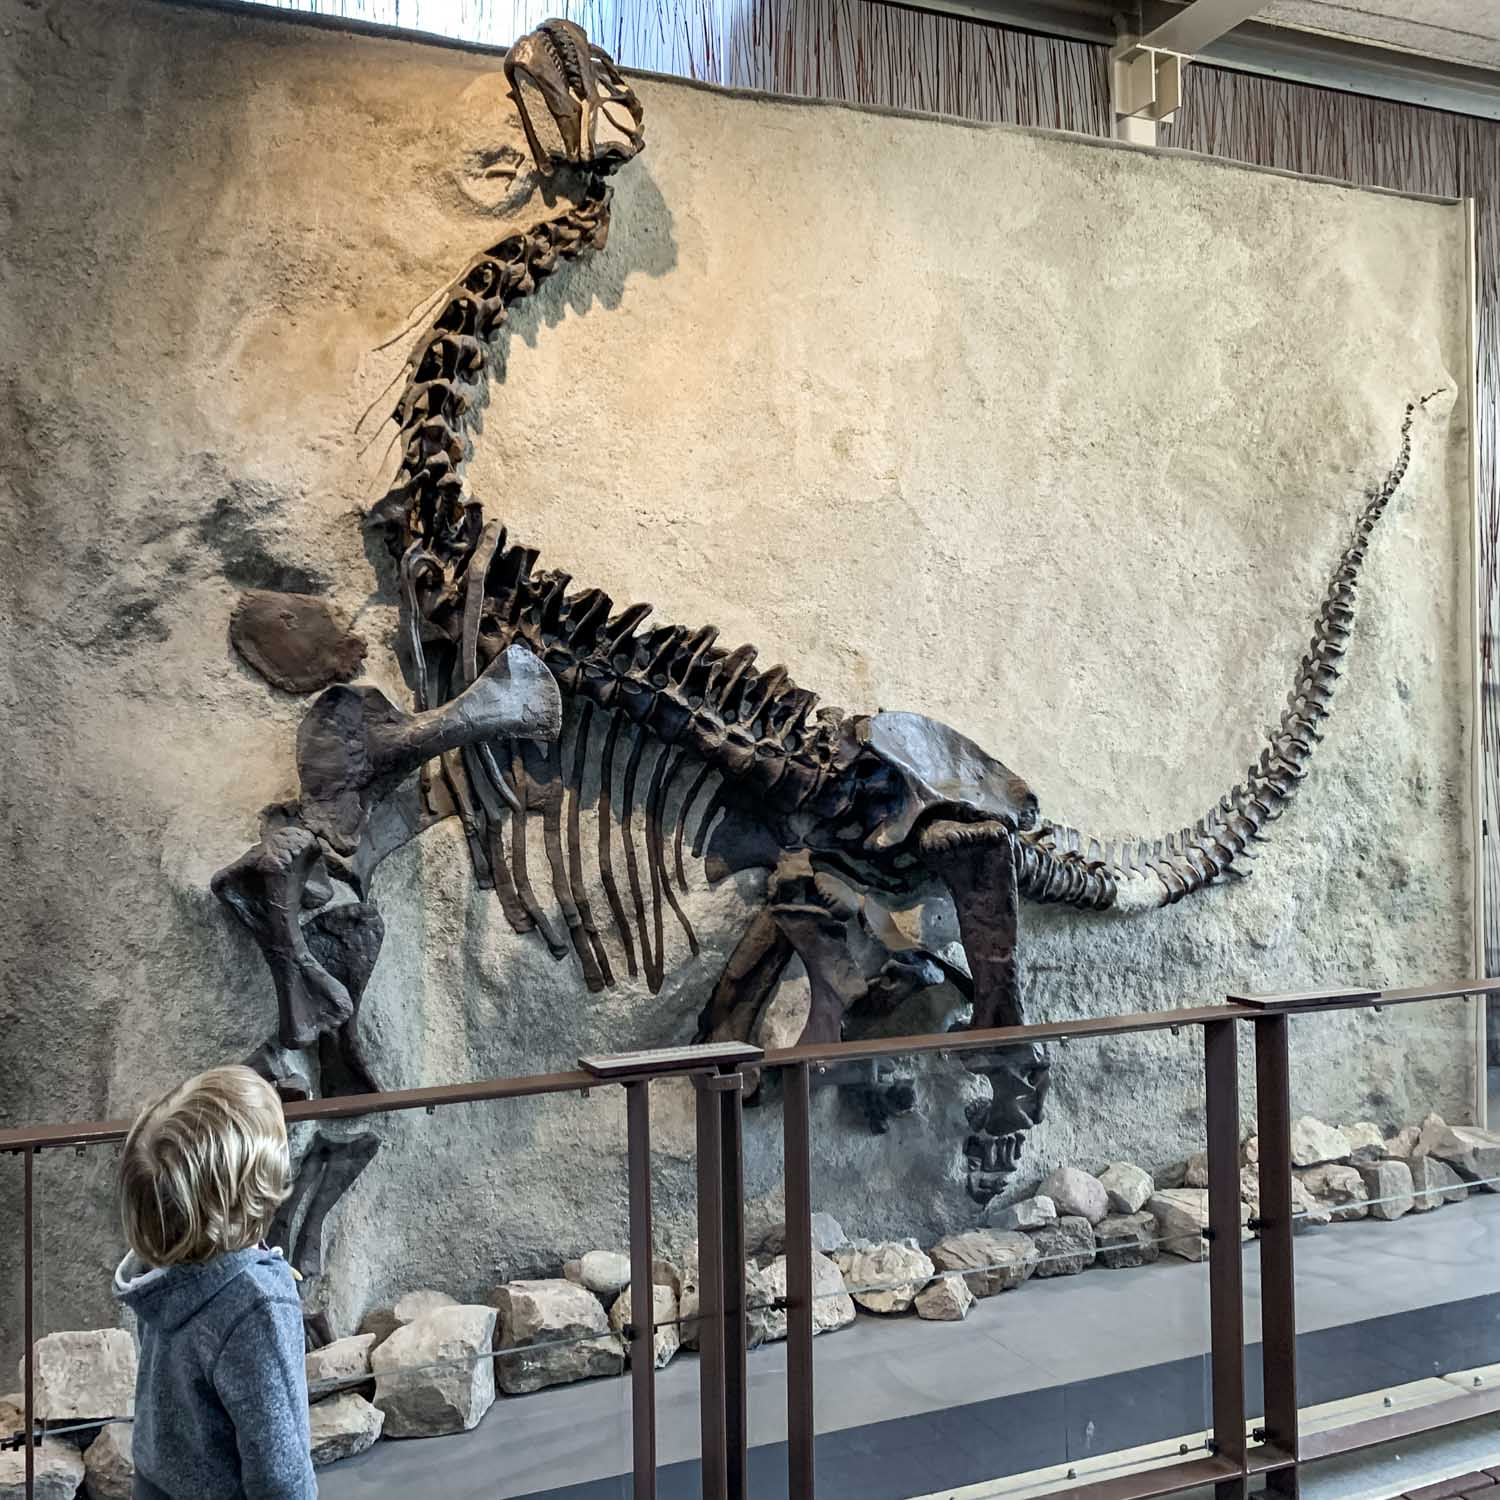 Vernal – Utah's Dinosaurland – Places to Hike, Camp and Visit!